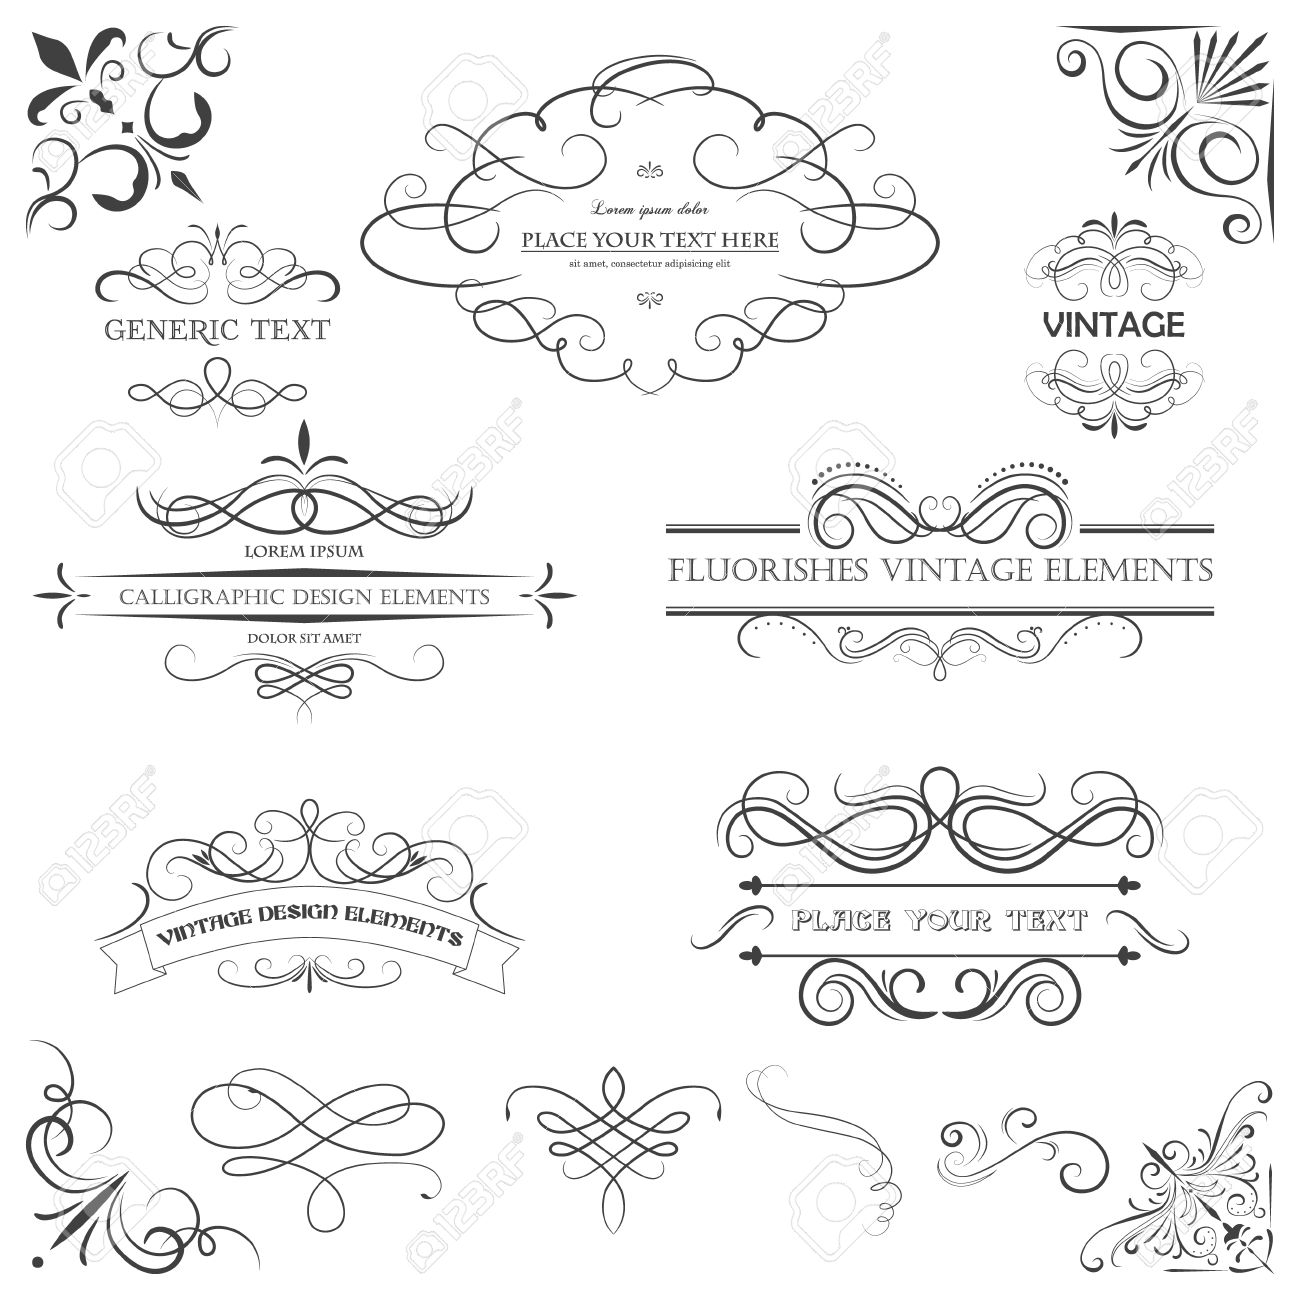 Vector vintage style elements. Vintage handwritten flourishes, patterns and ornaments. - 34875602